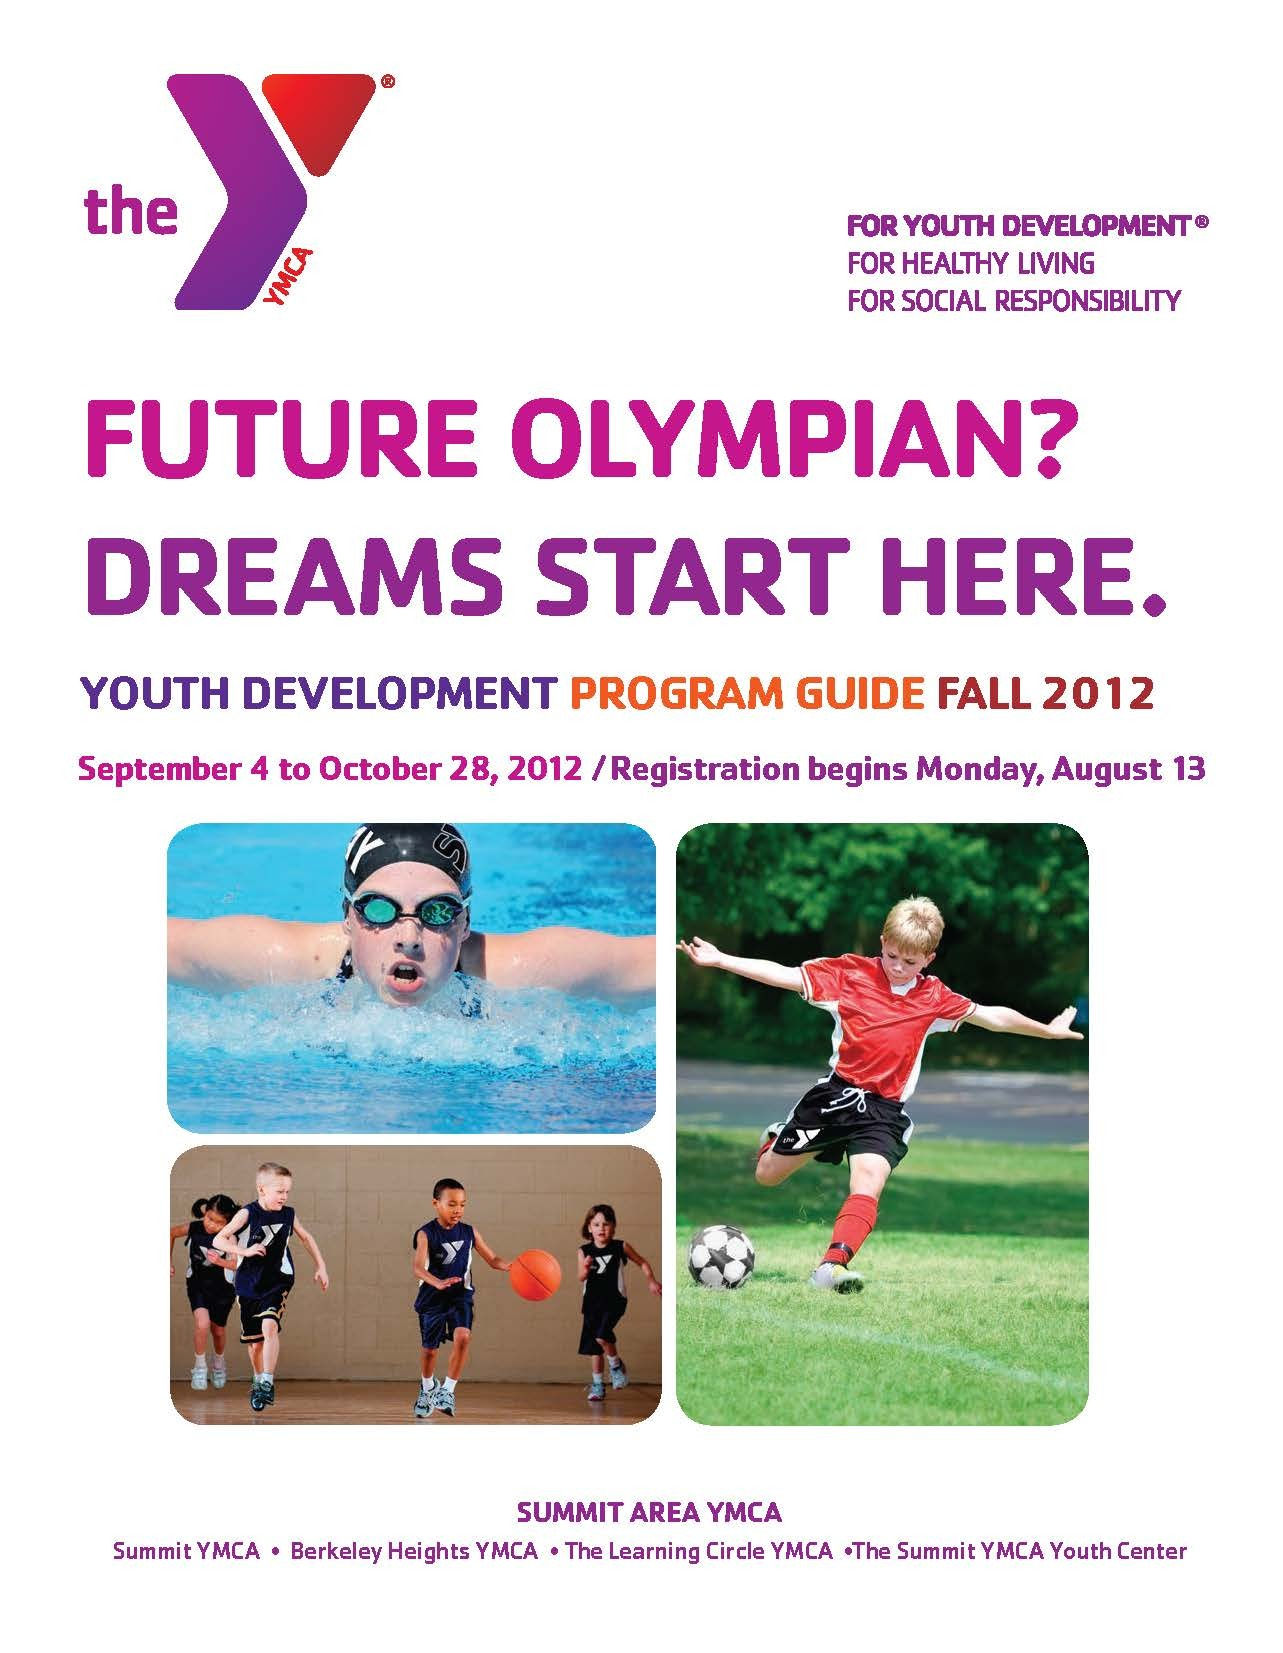 62fa0f8dba0096edfc7a_pages_from_summit_ymca_fall_program_guide_2012_web.jpg